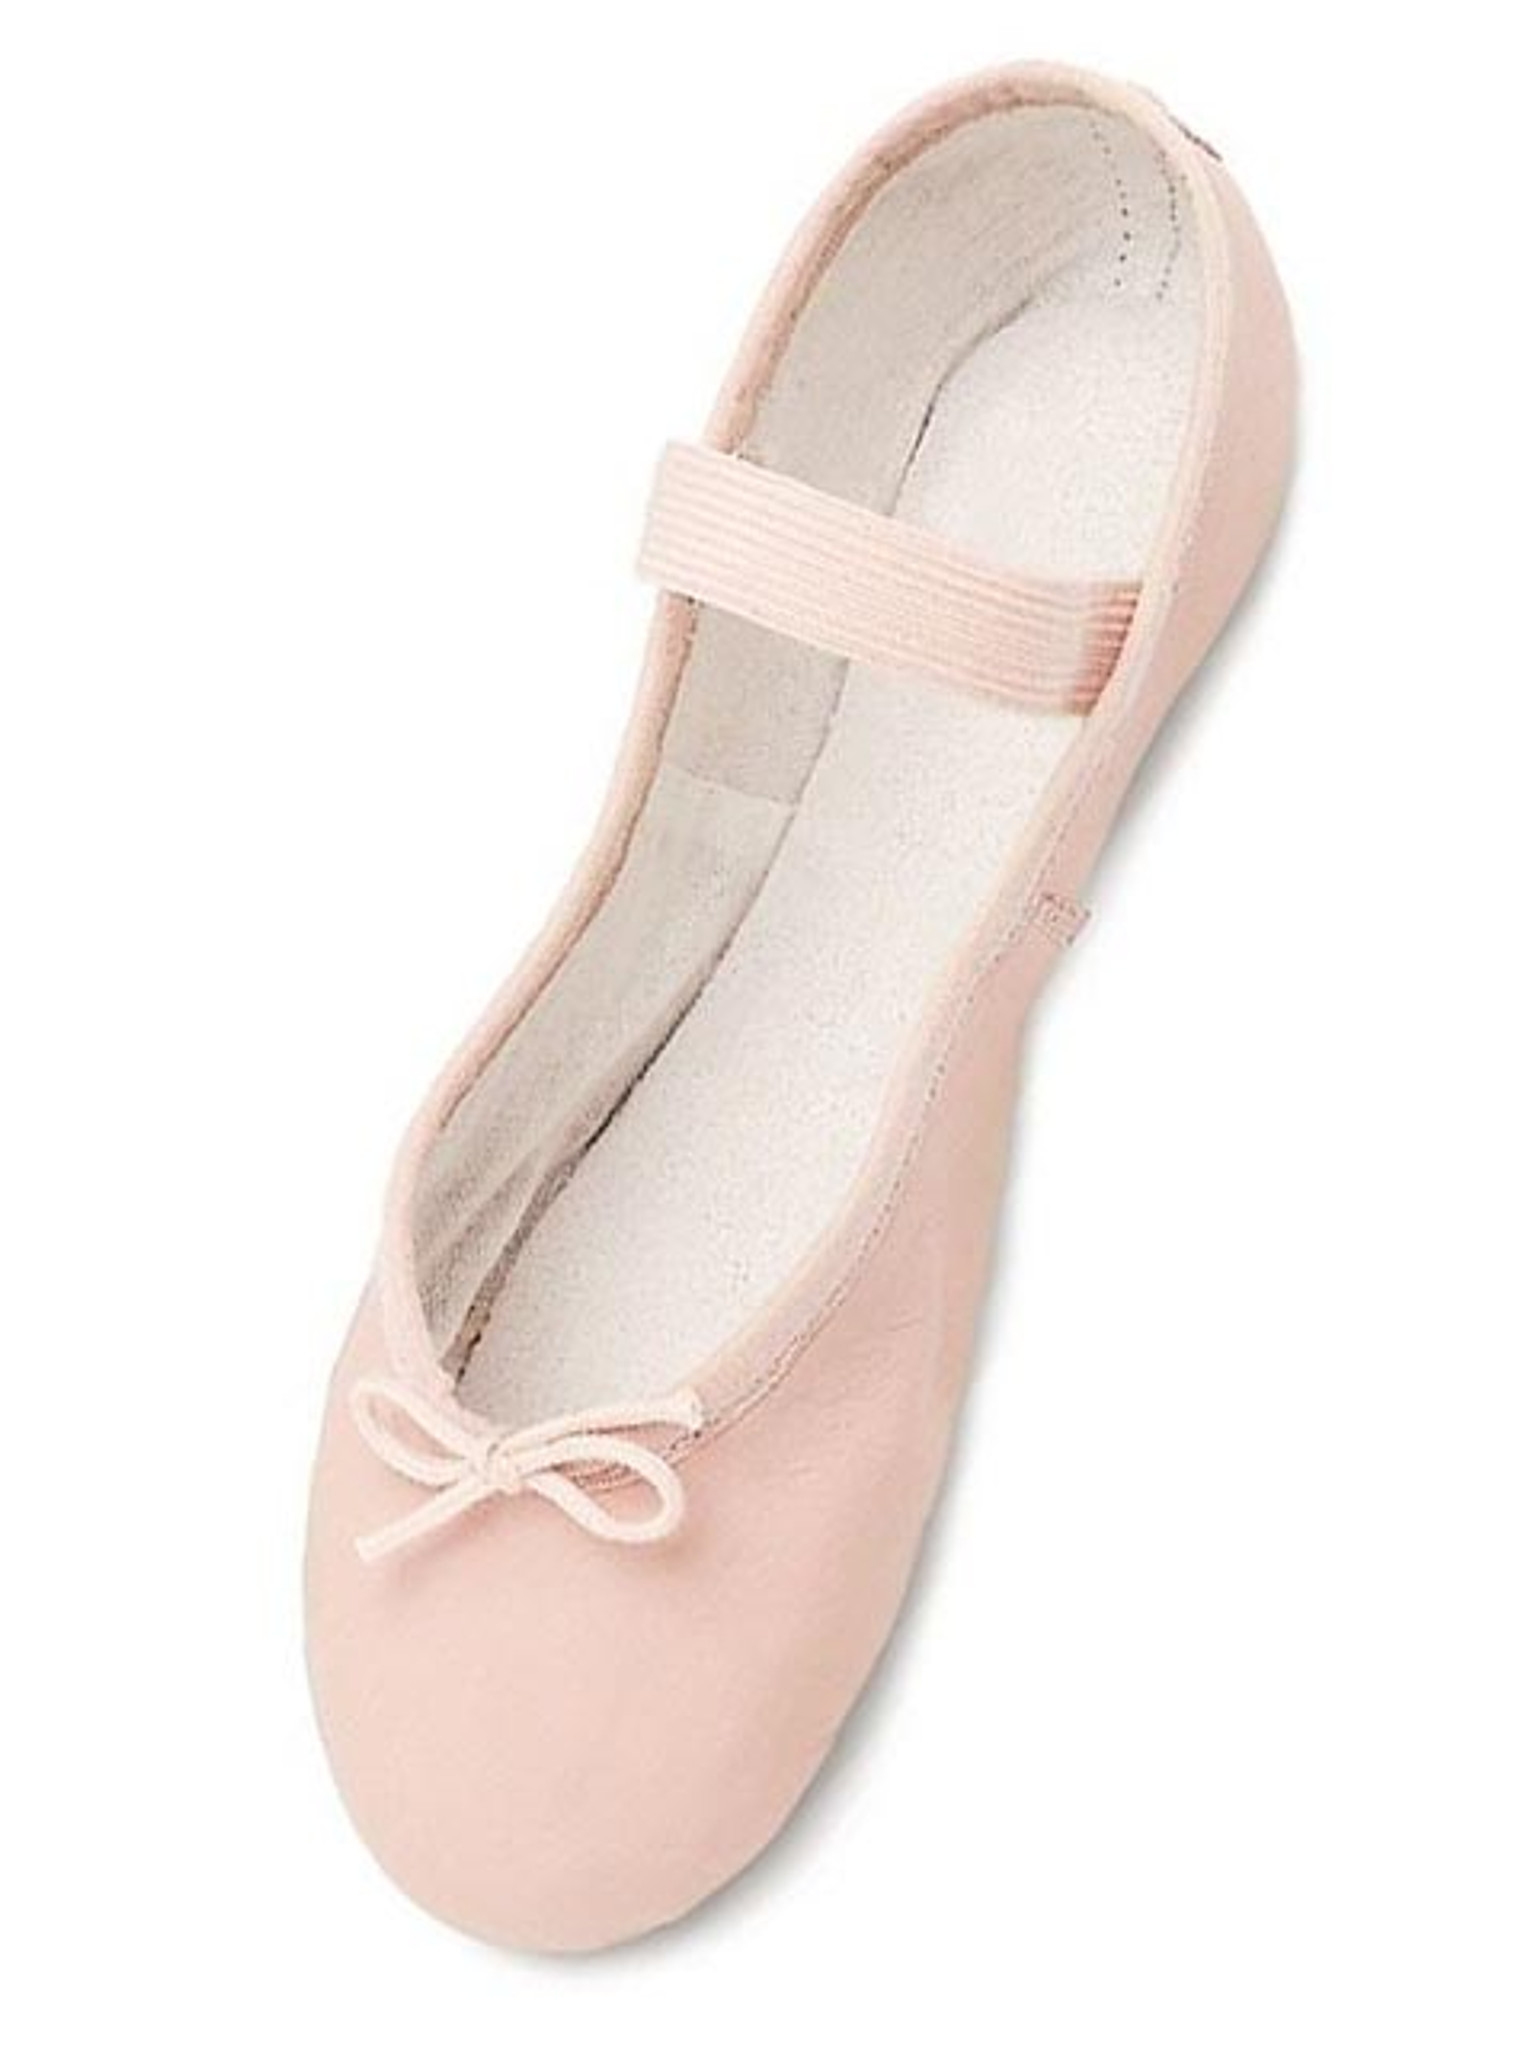 Child /& Adult NEW Bloch Pink Full Sole Leather Dansoft Ballet Shoes Toddler